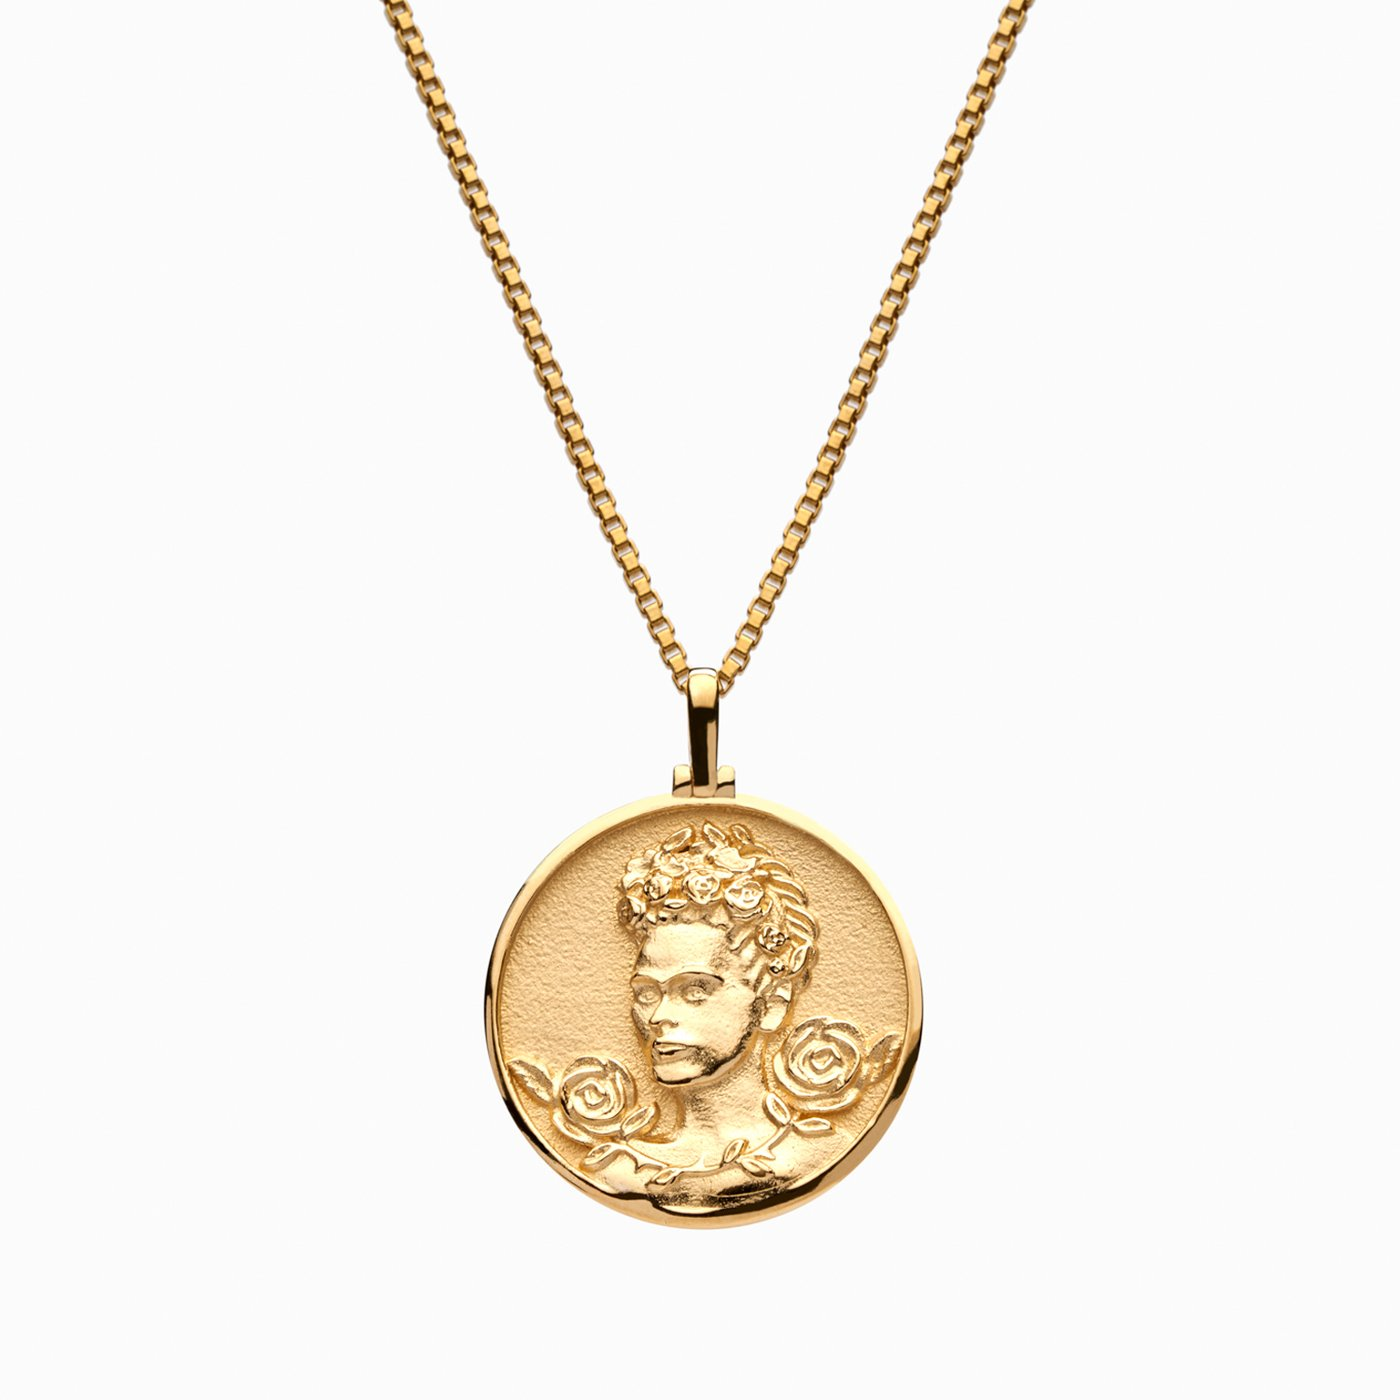 gold coin pendant necklace; frida kahlo necklace